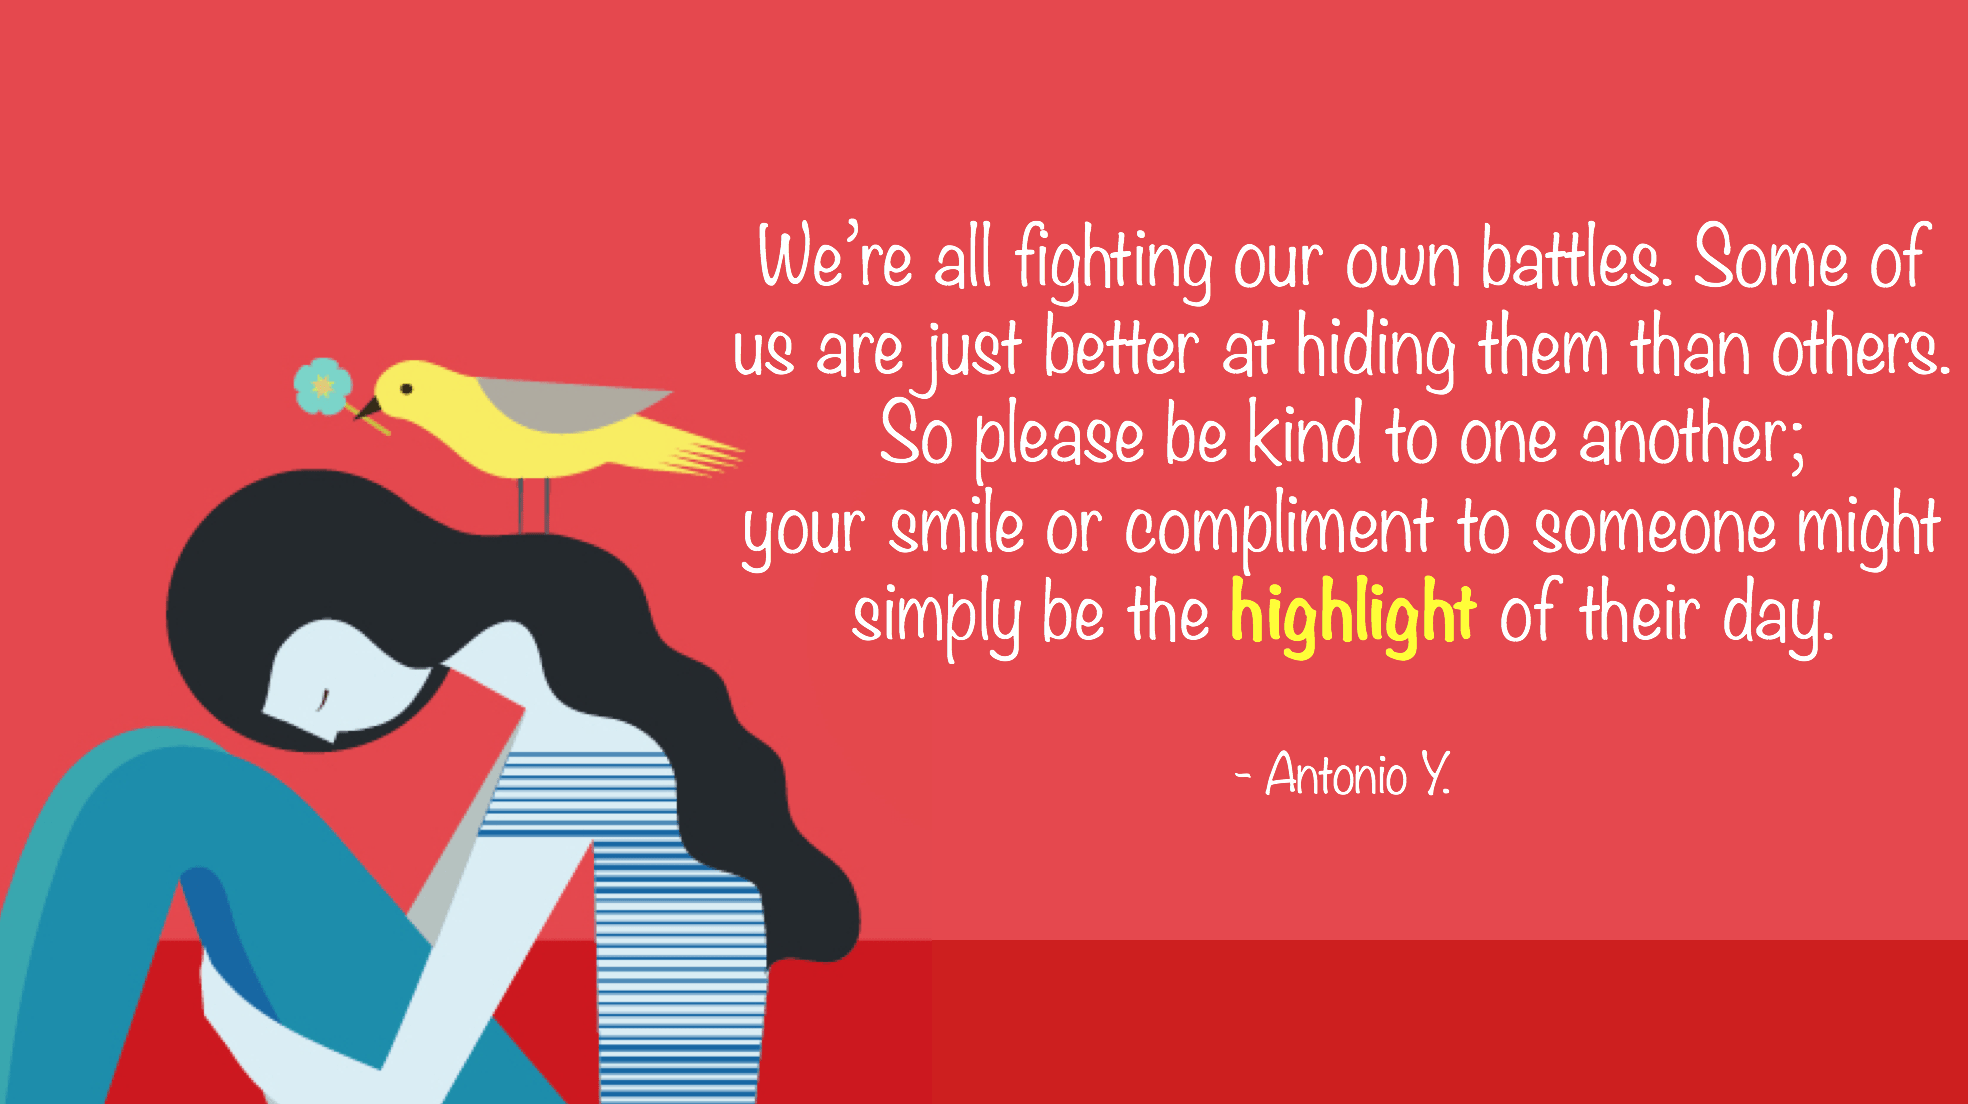 """…So please be kind to one another; your smile or compliment to someone might simply be the highlight of their day."" – Antonio Y. [1968 × 1104]"